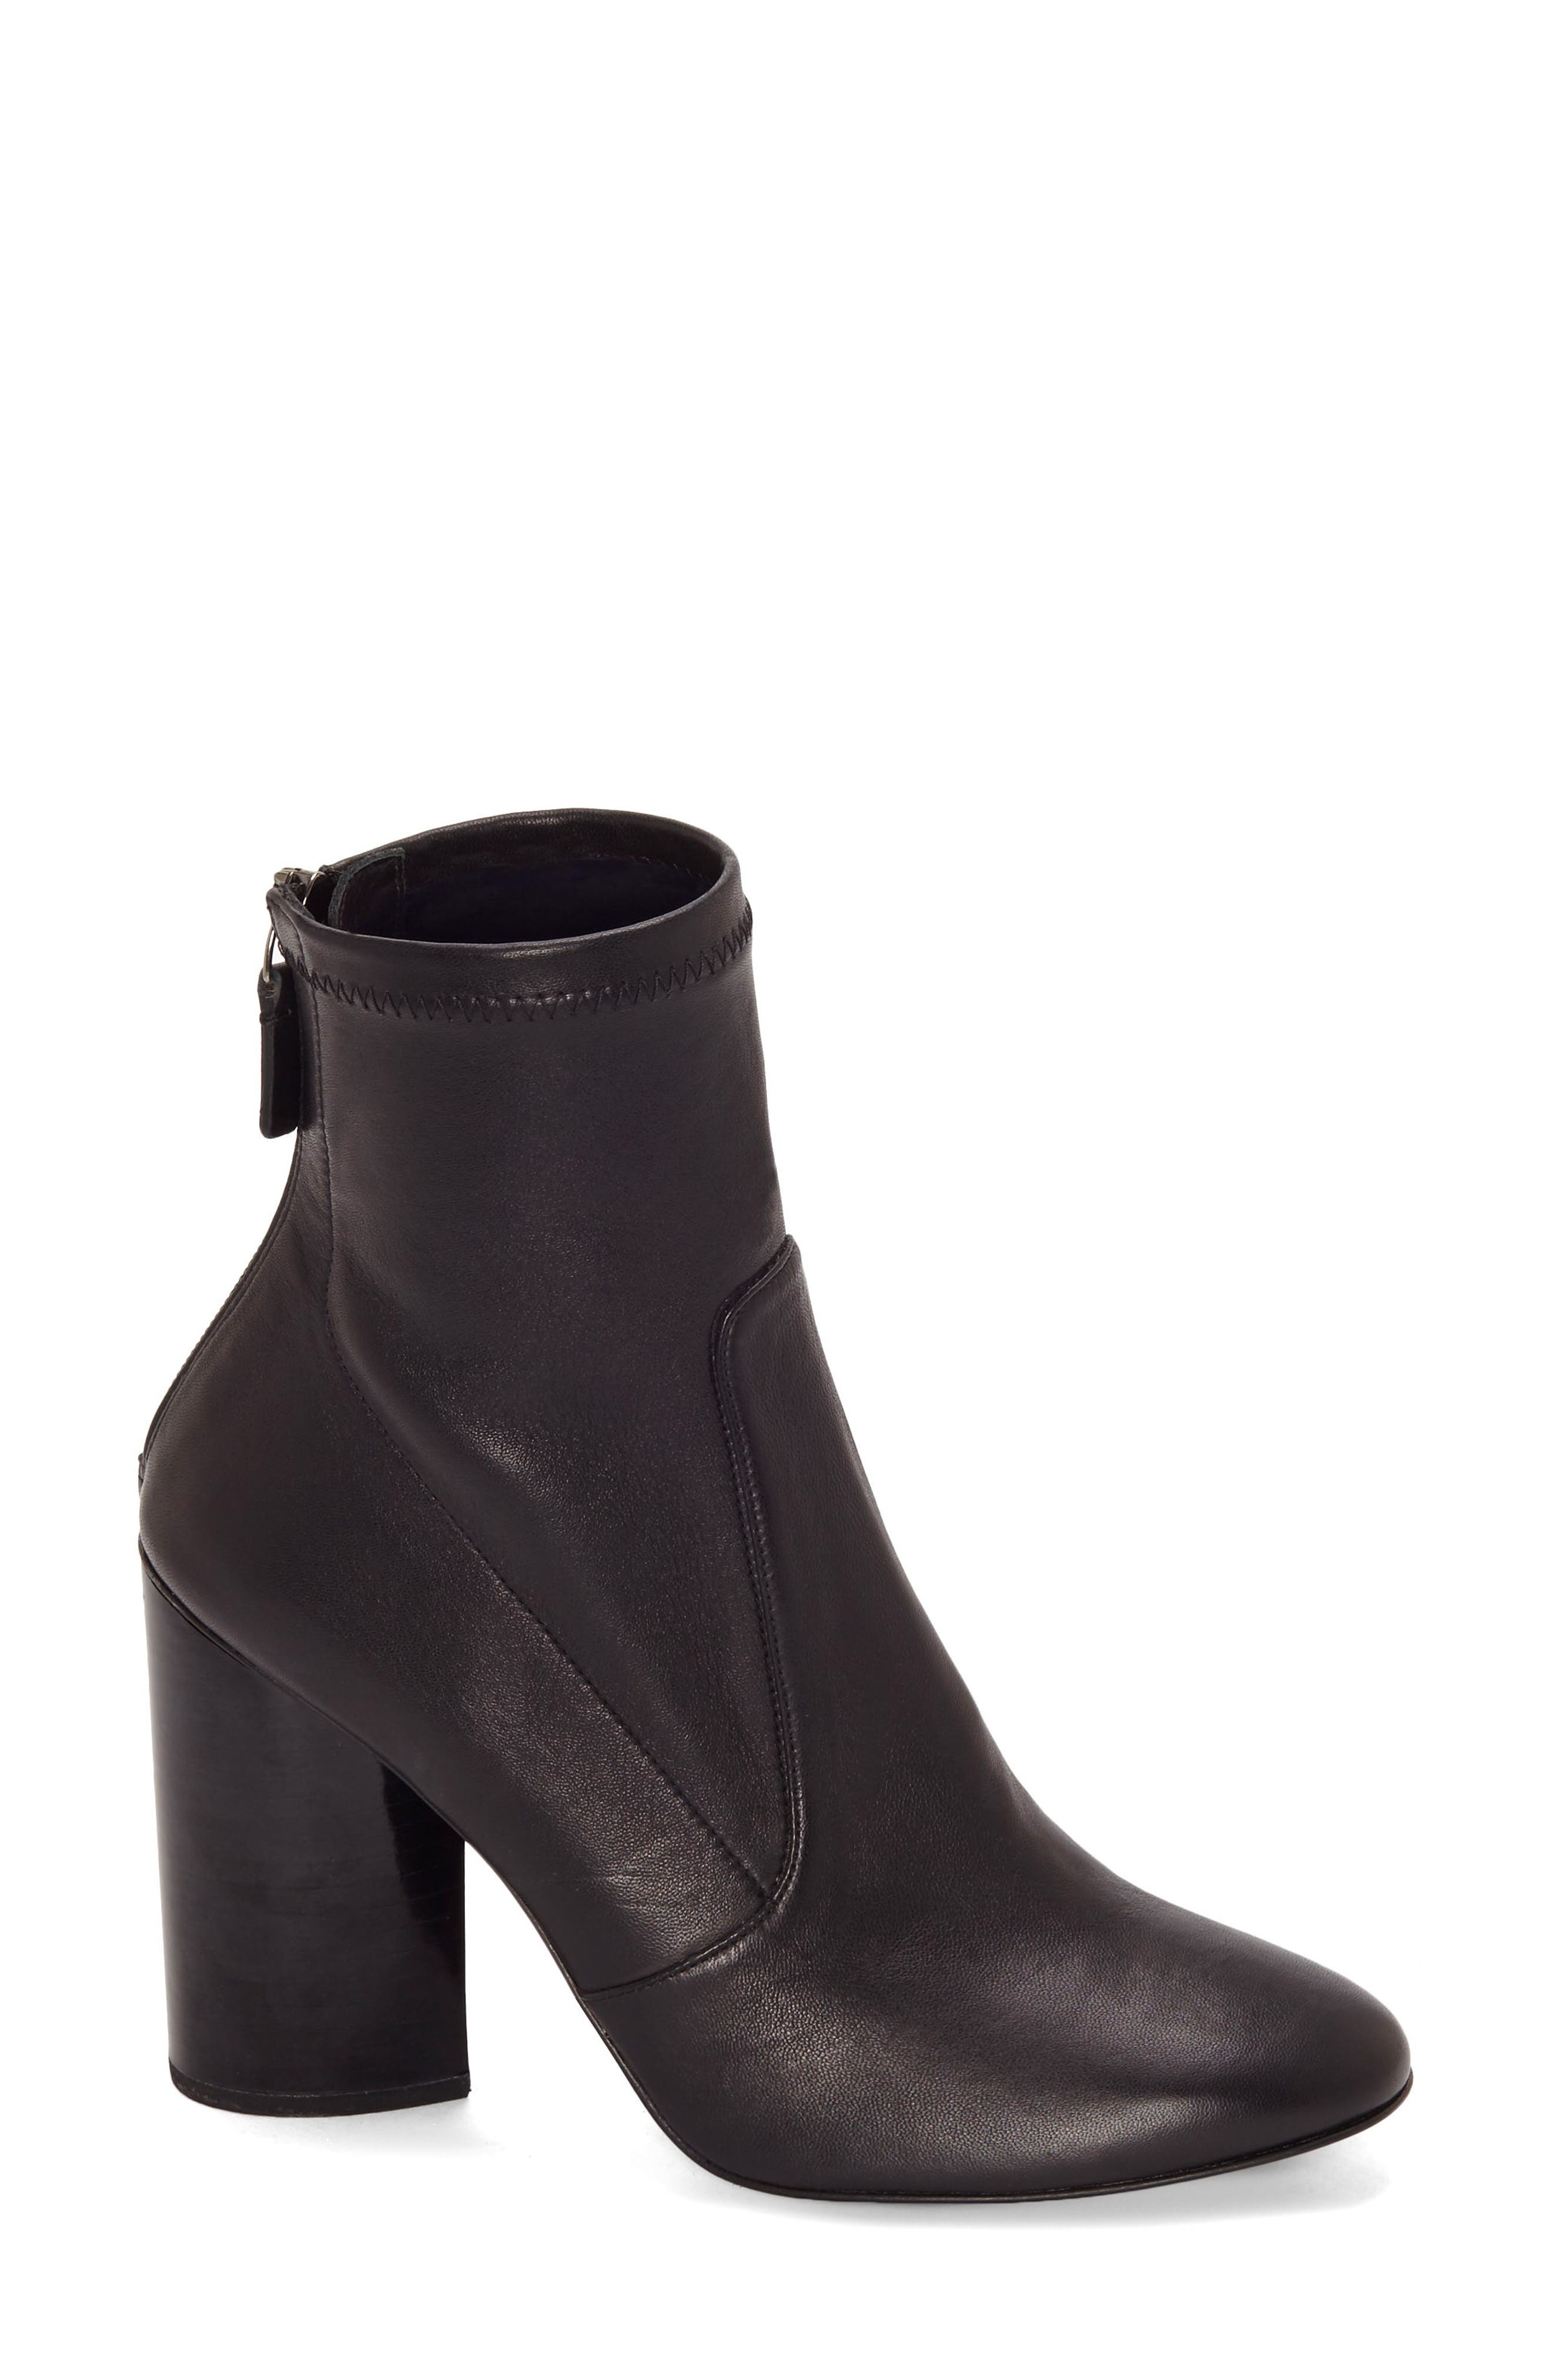 Alternate Image 1 Selected - Mercedes Castillo Dessa Round Toe Bootie (Women)